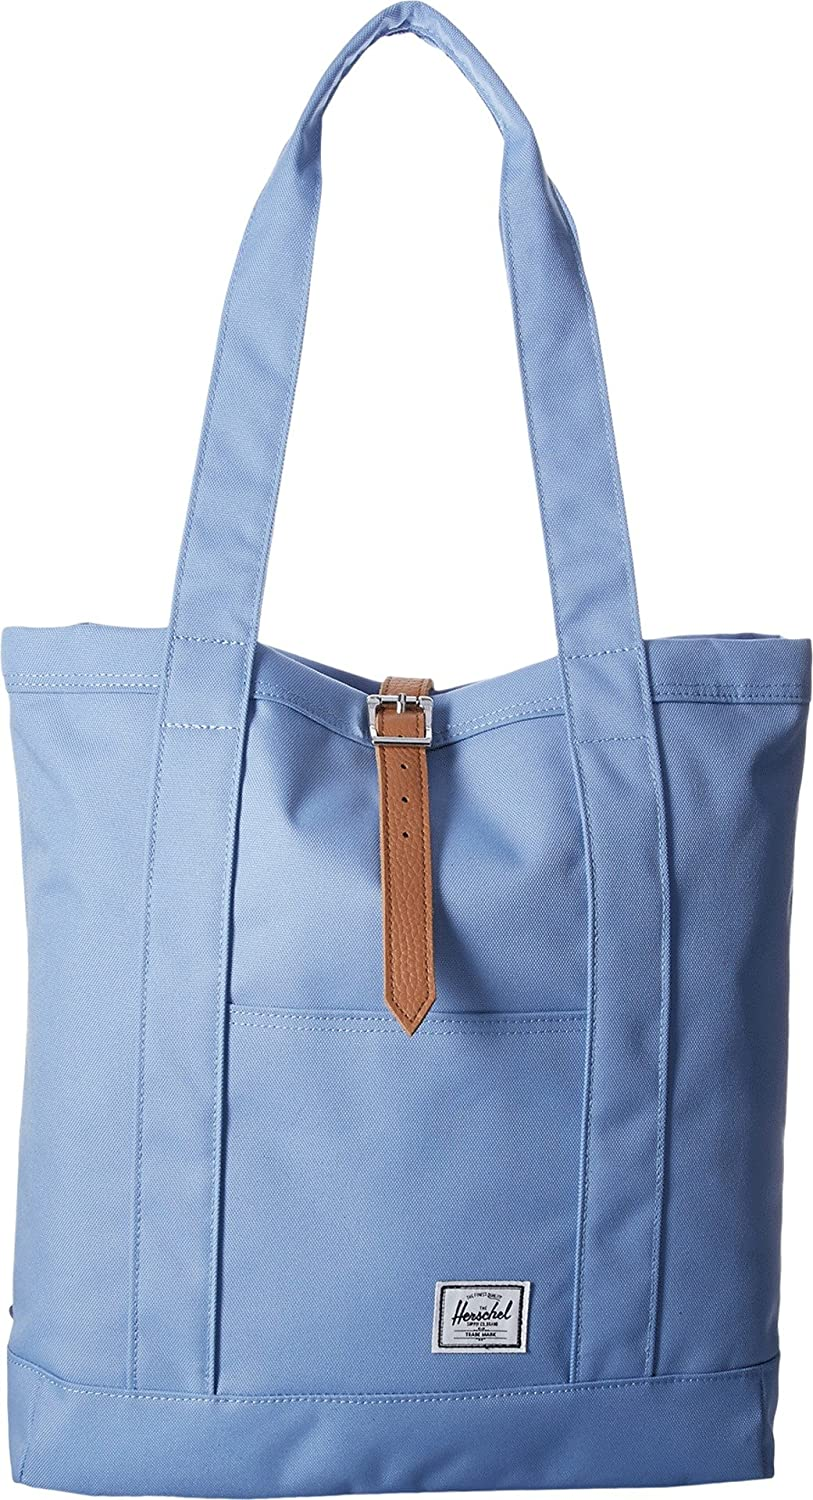 Herschel Supply Co. 10029-00001-OS - Bolso para mujer Varios colores Herschel Supply Company 10029-00055-OS